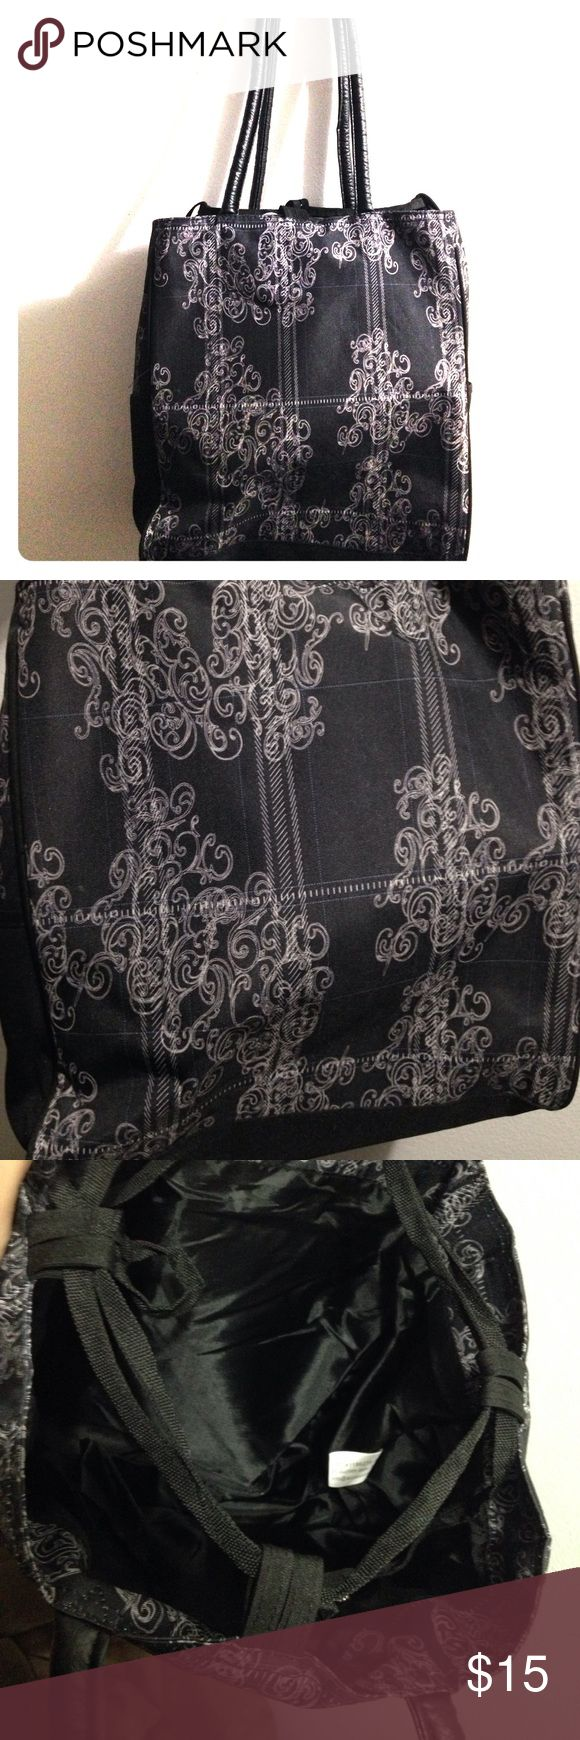 Black Victorian design tote bag Elegant design, near mint condition, has a zipper inside & a pouch on each side for water bottles. Very spacious inside & faux leather handles, love the bag but not the price? Make an offer ❤️ Bags Travel Bags